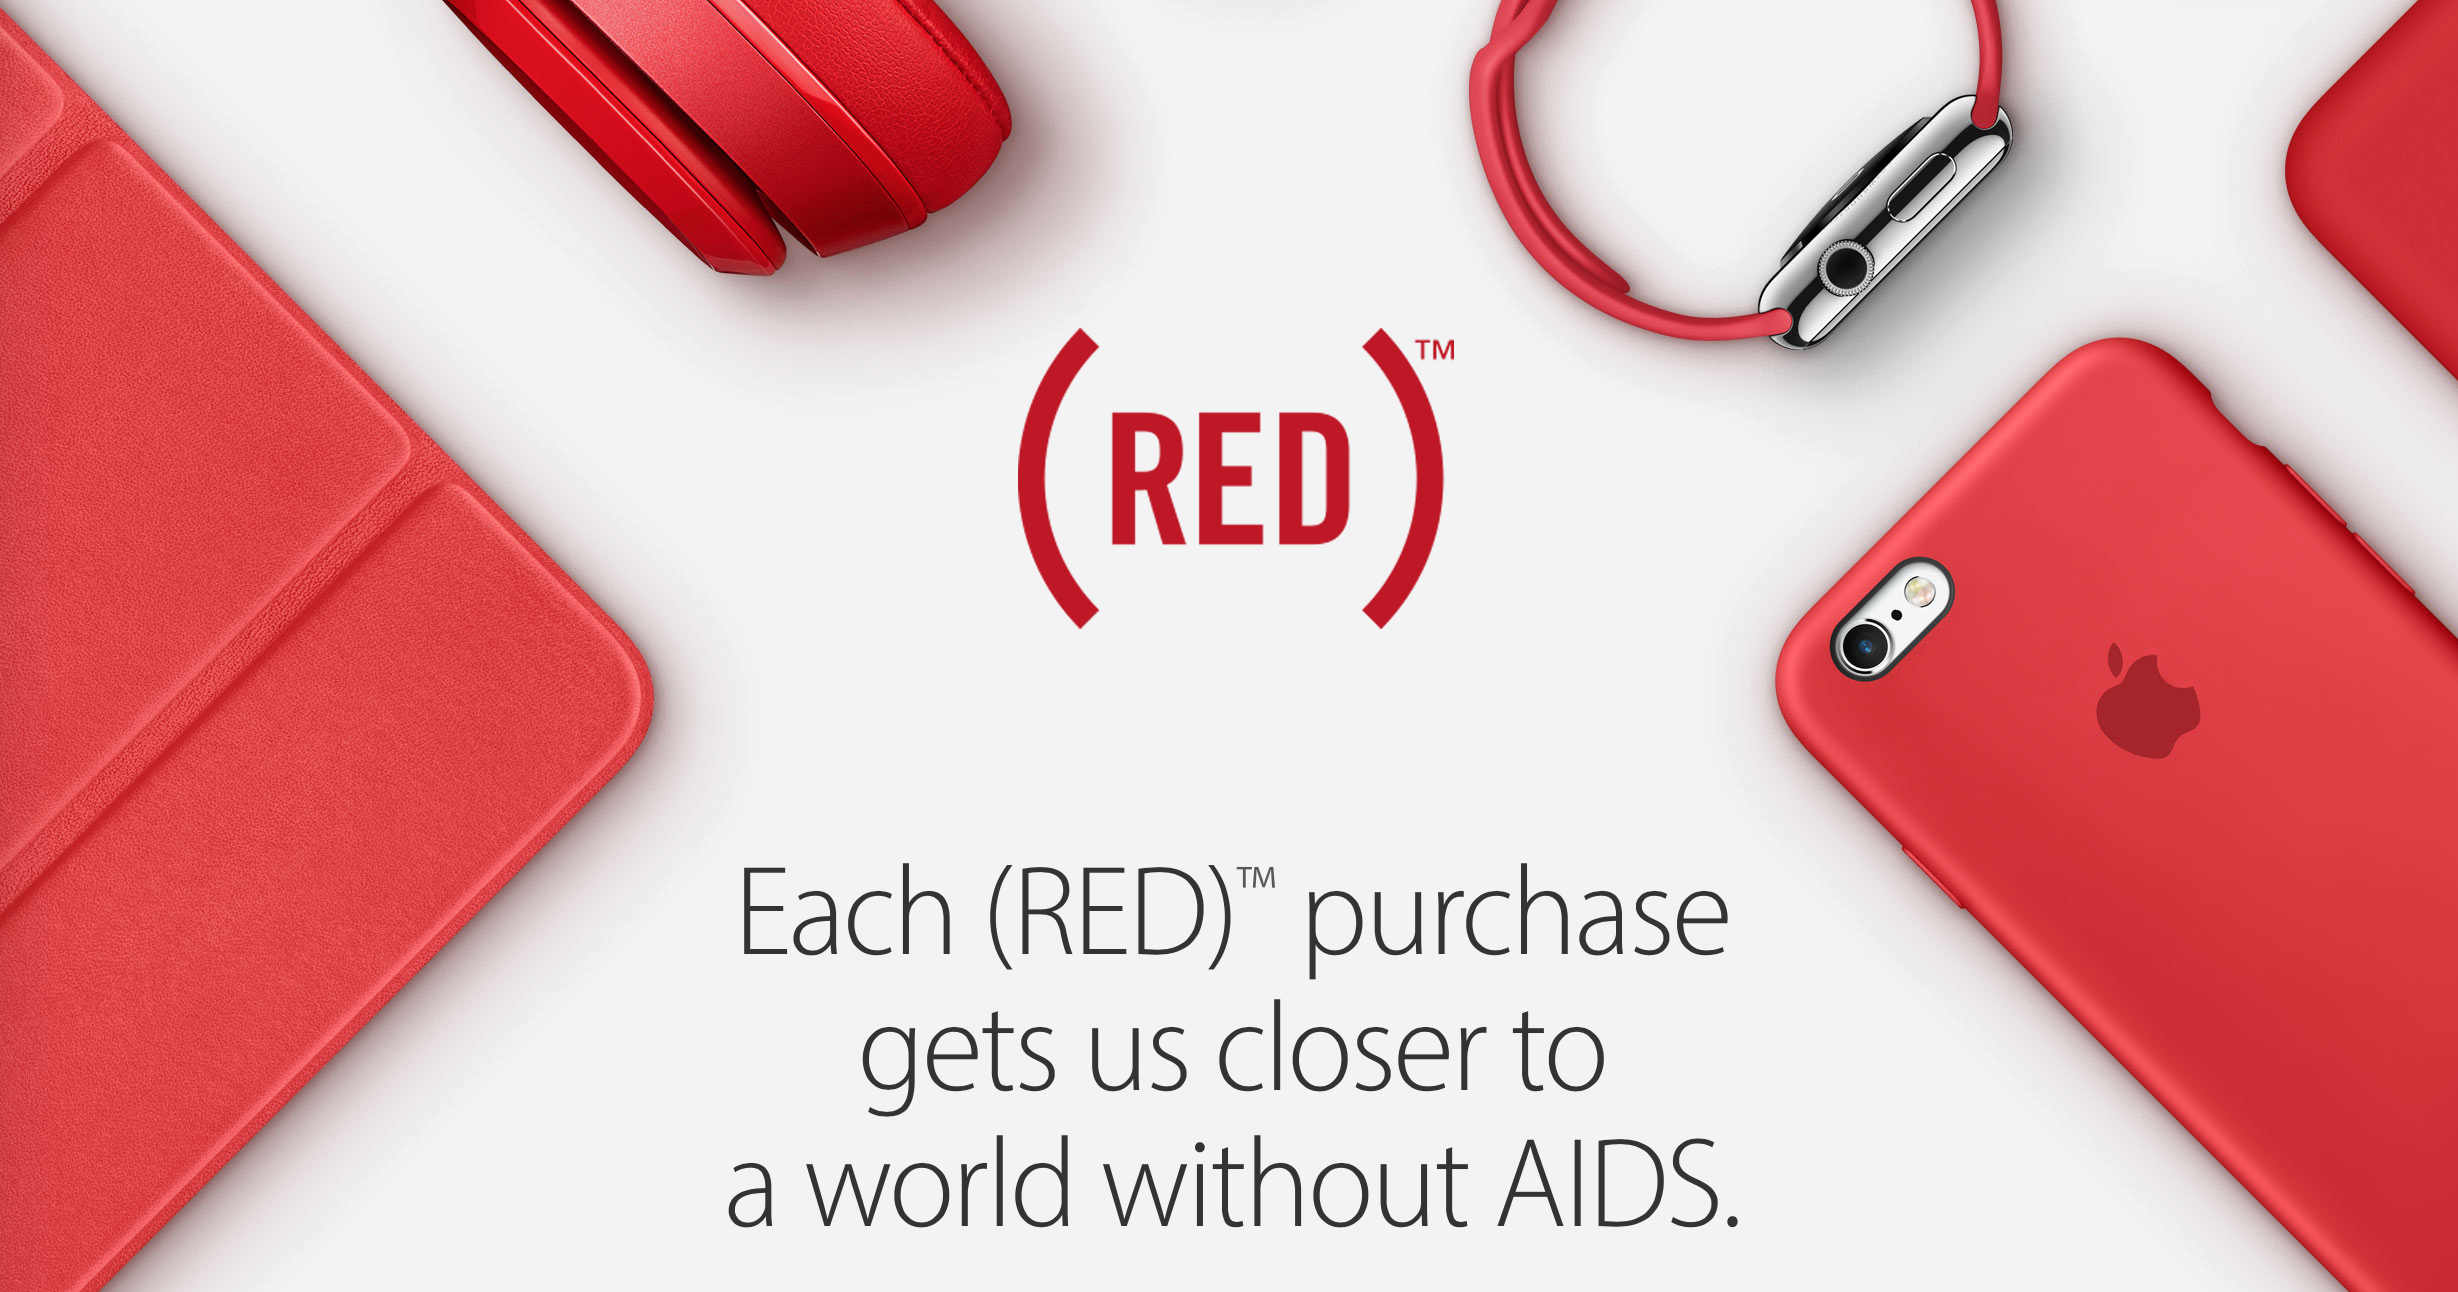 Apple paints its store logos and home page red for World AIDS Day